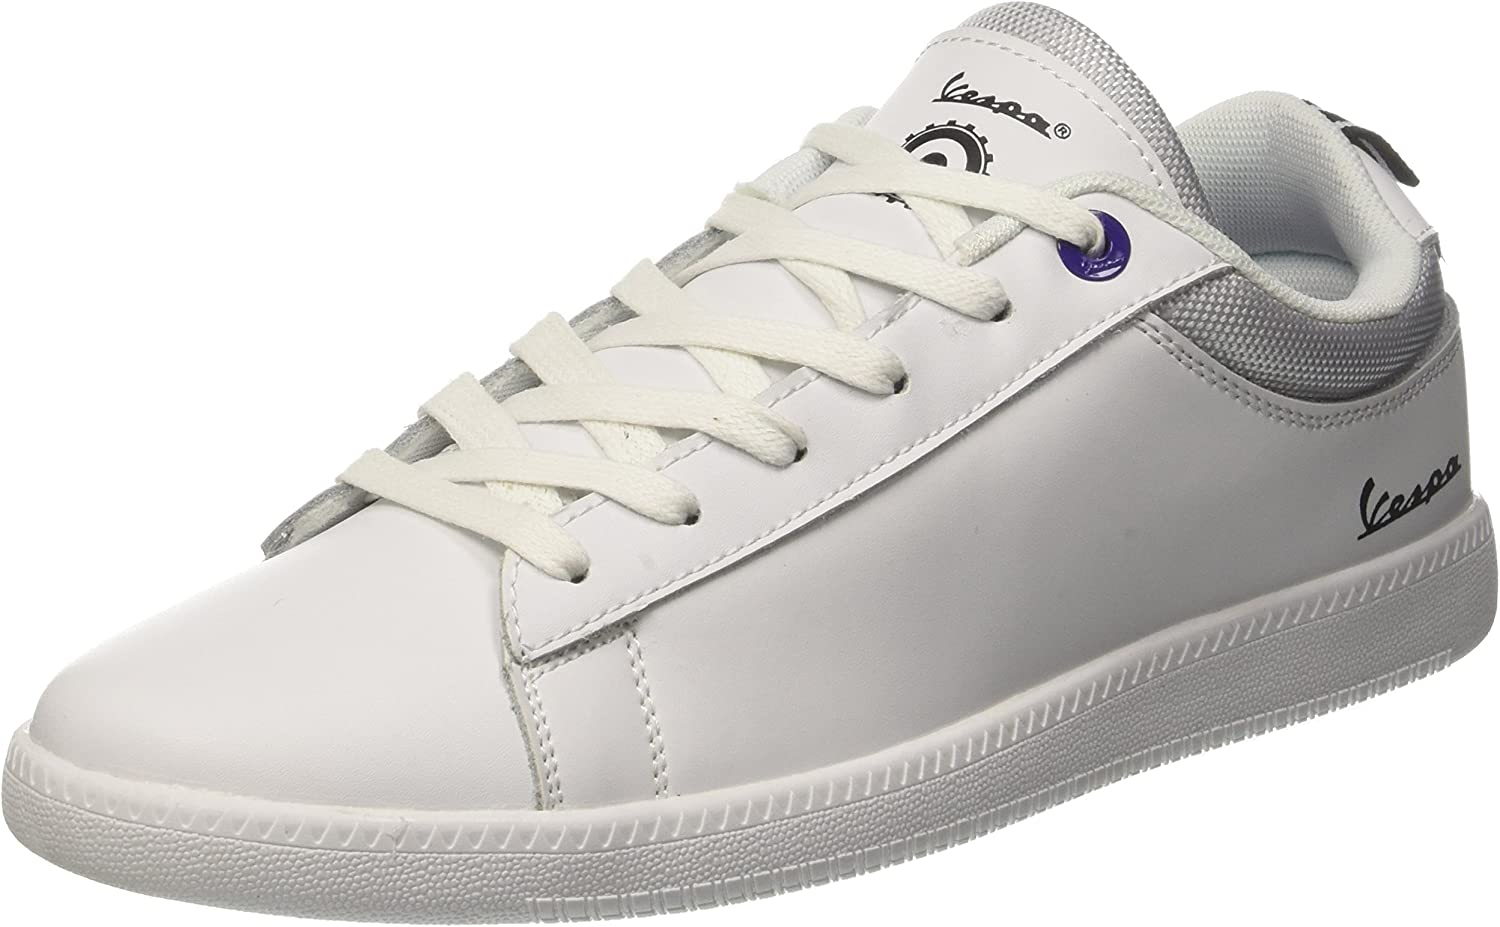 Vespa Unisex Adults' Festival Trainers